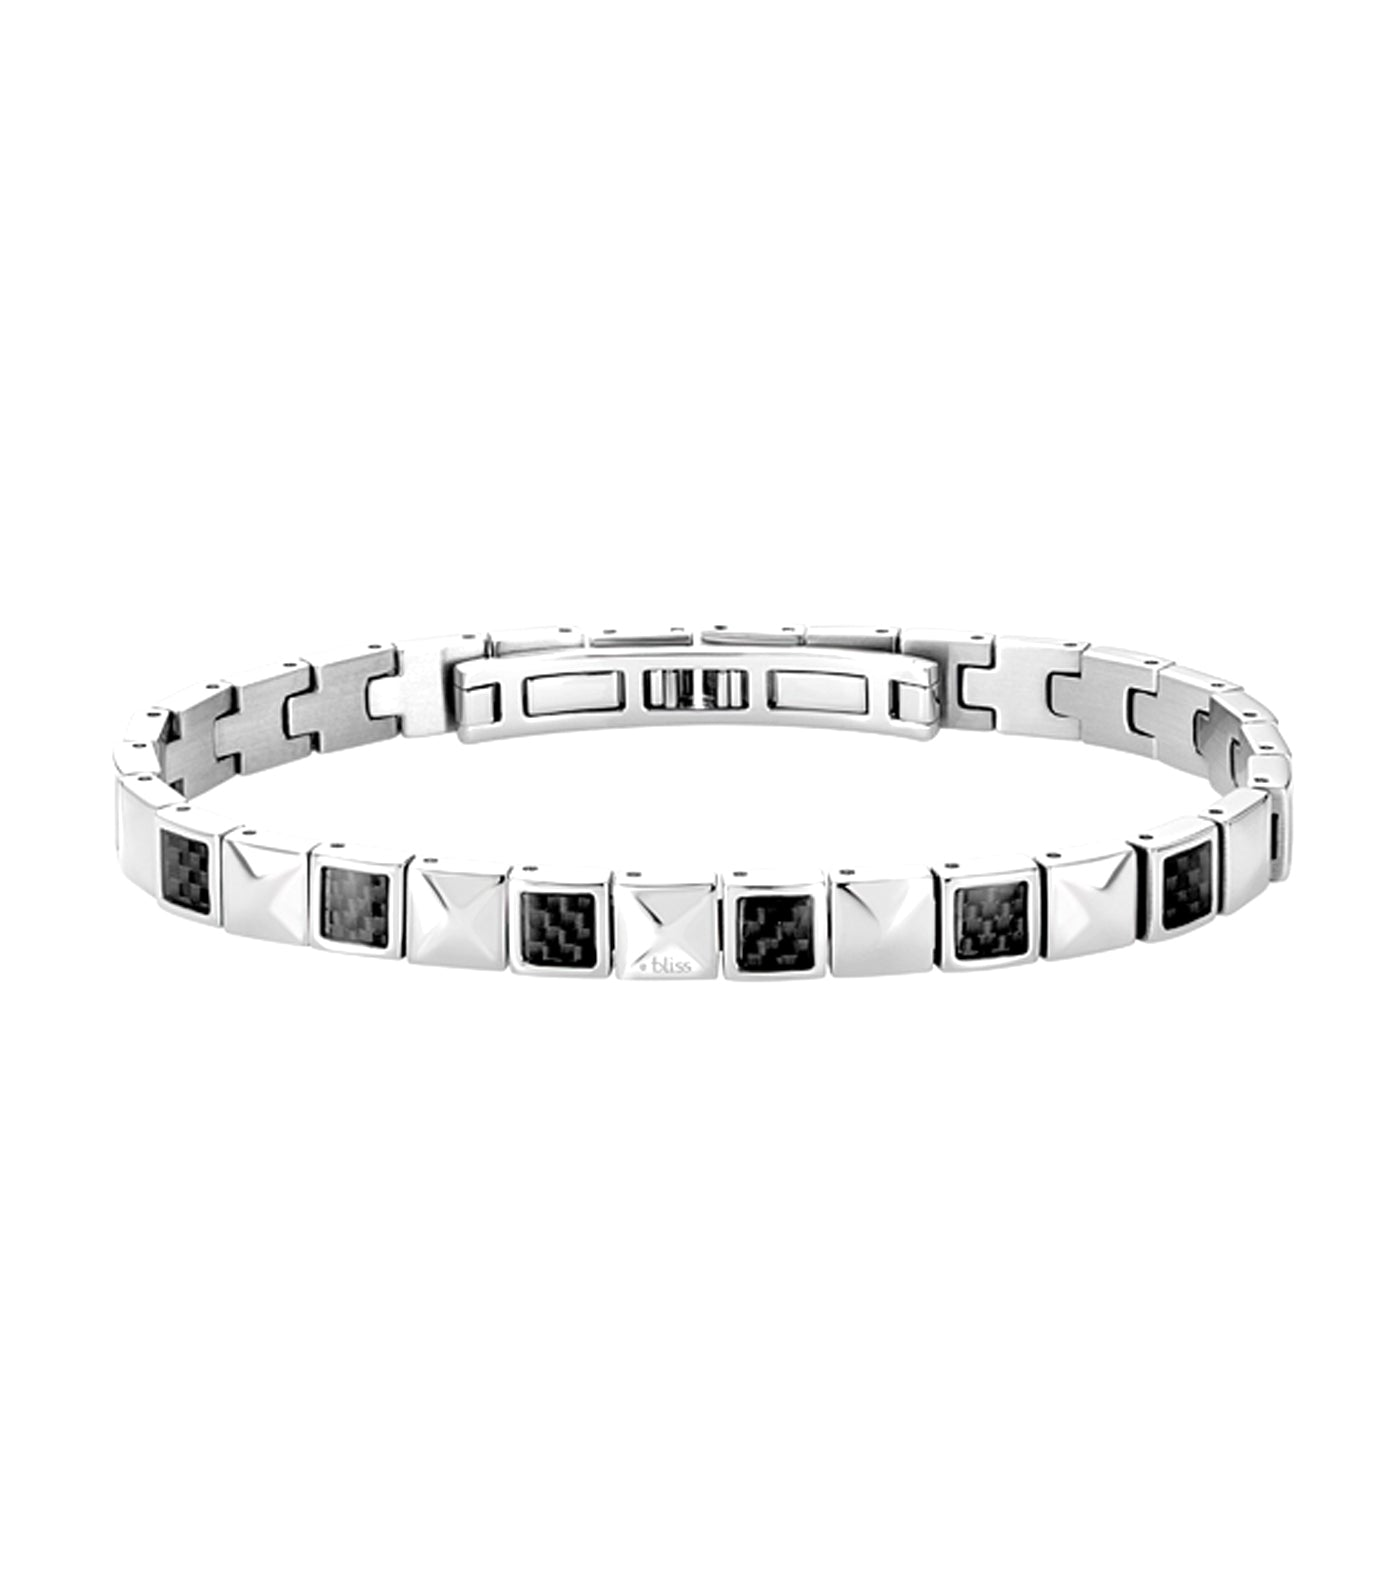 Blaze Stainless Steel Carbon Fiber Bracelet with Diamonds